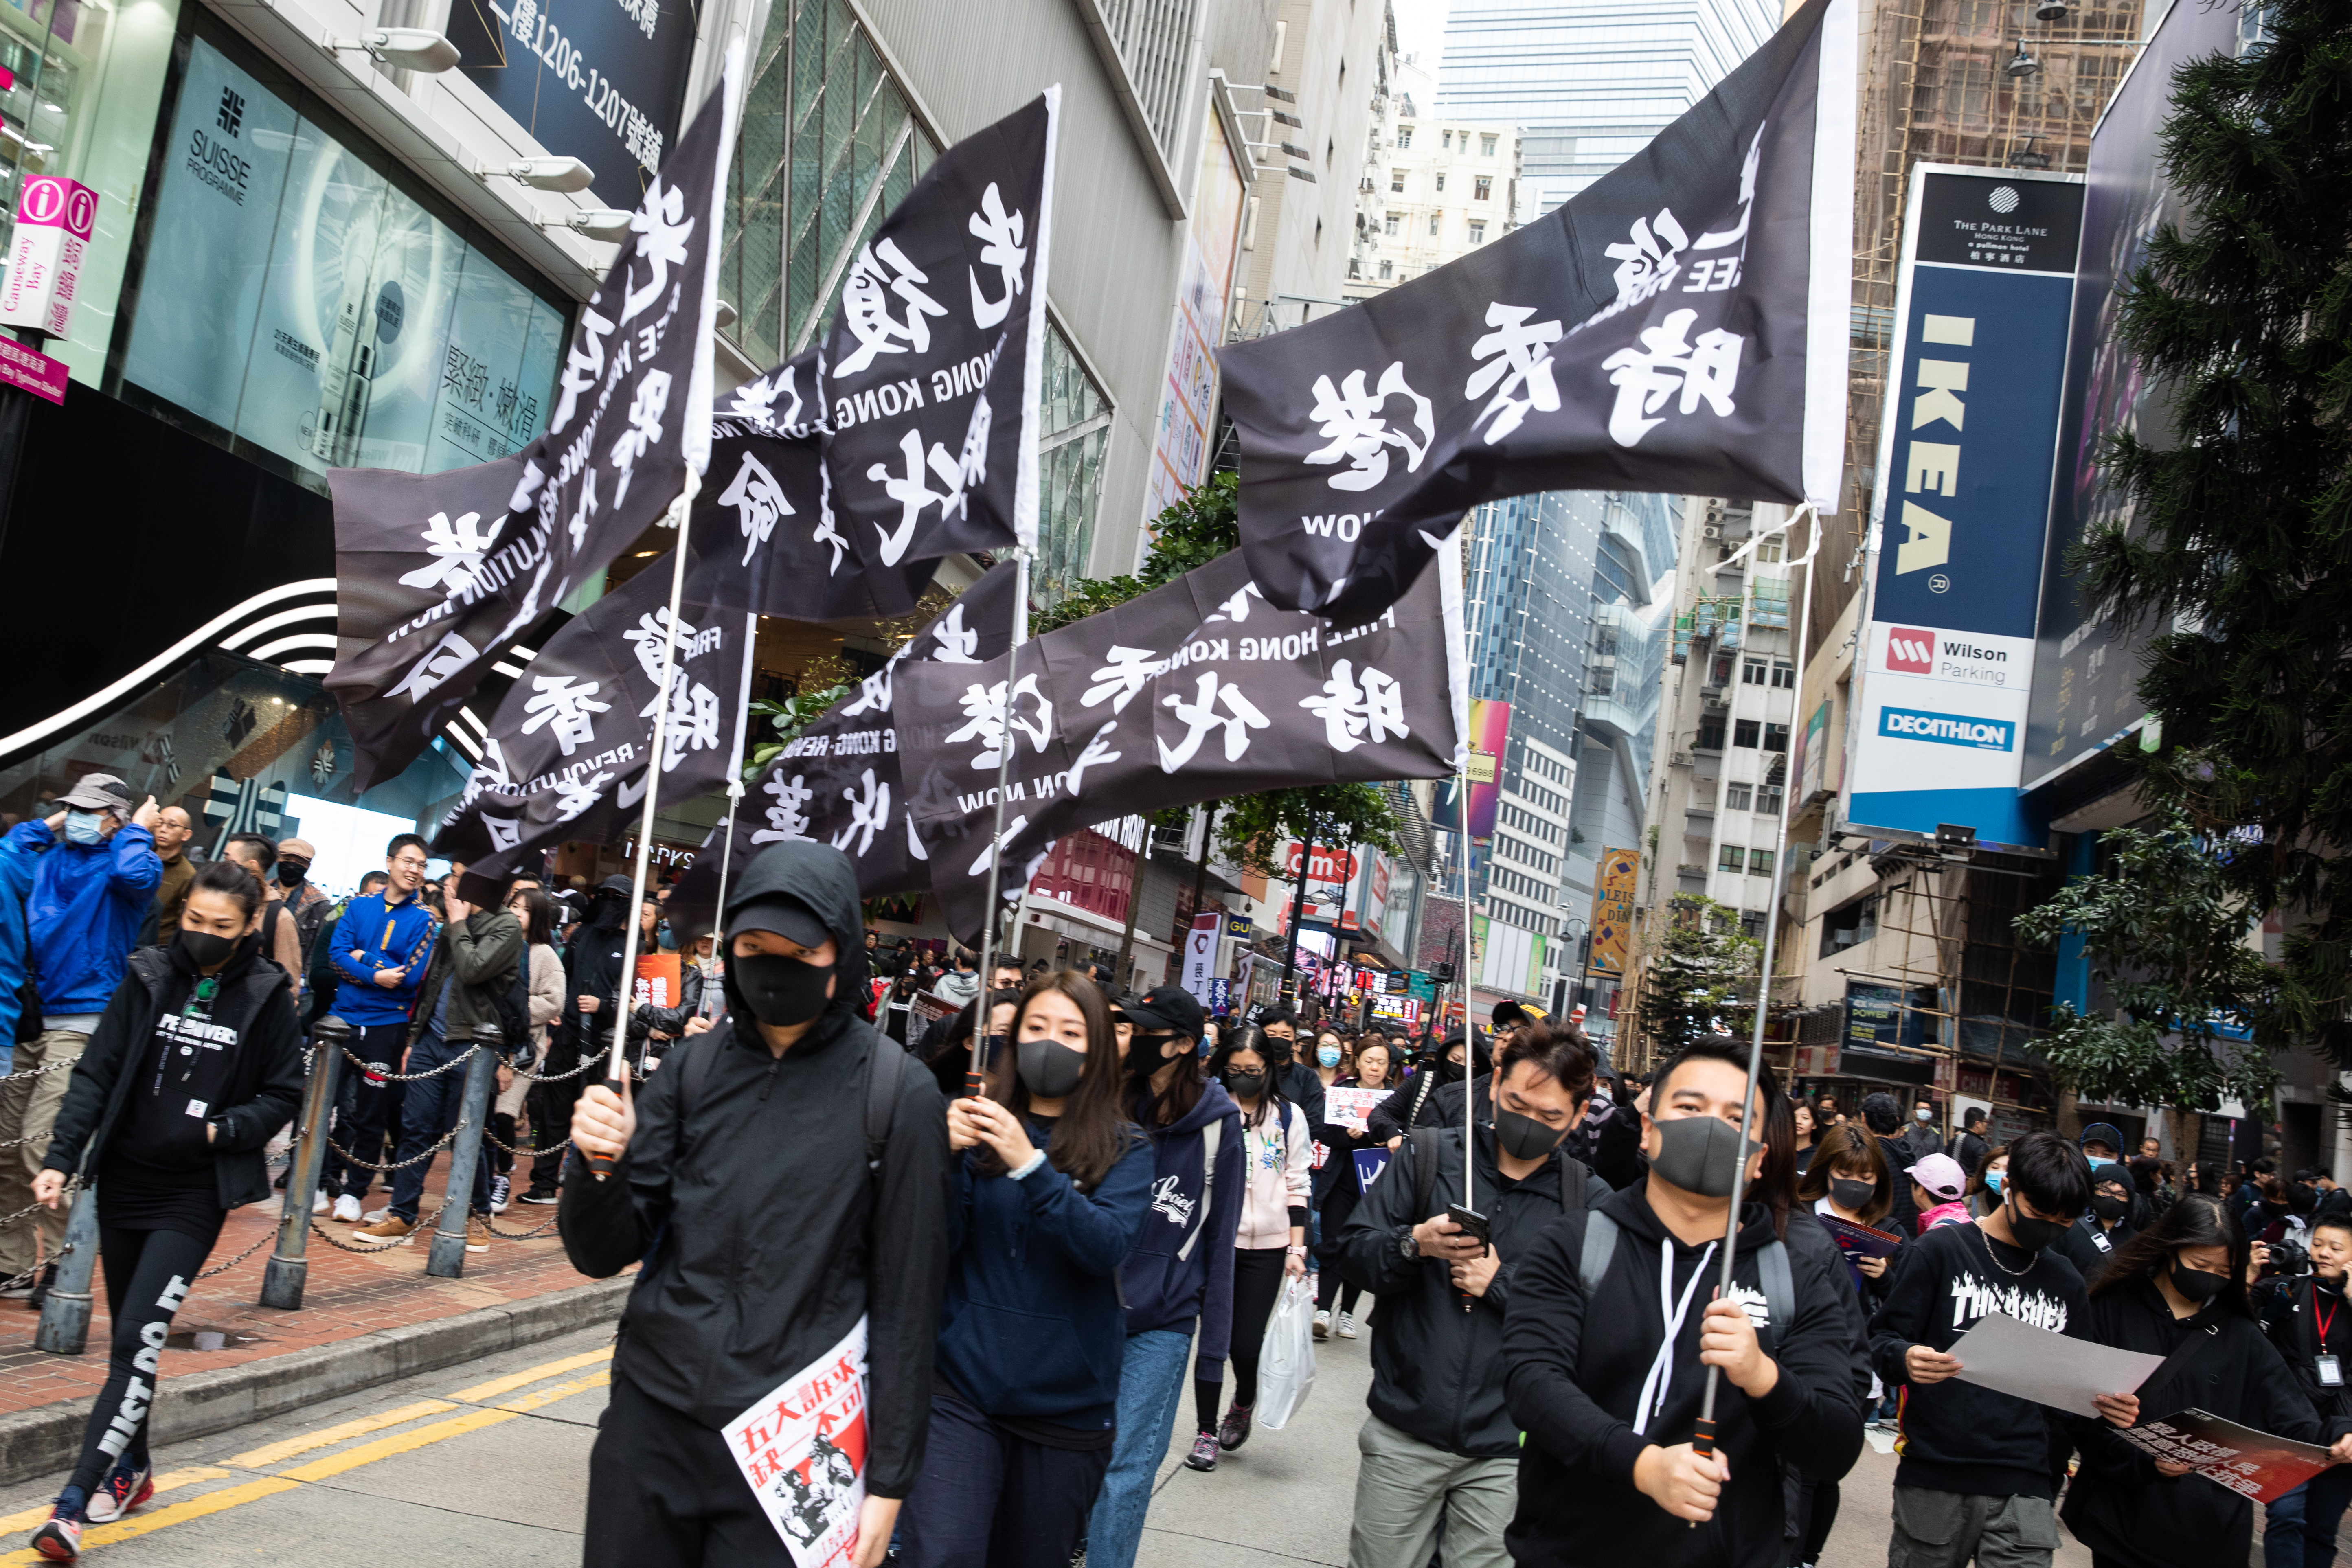 Demonstrators carry flags as they march during a protest in the Causeway Bay district of Hong Kong, China, on Wednesday, Jan. 1, 2020.